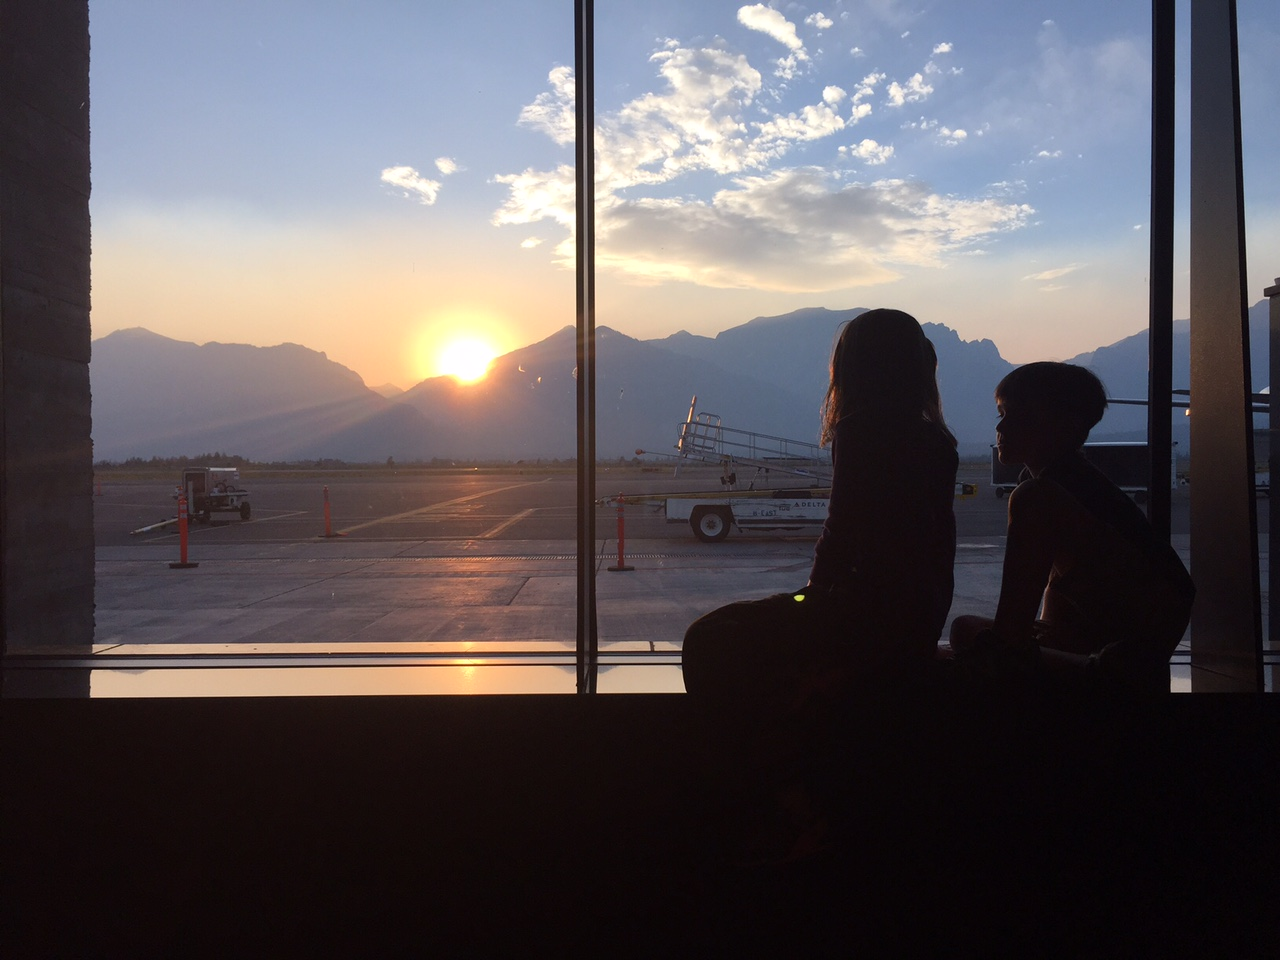 Samantha and Parker admire the sunset over the Tetons as they wait for Quimby's flight to arrive in Jackson Hole, Wy.